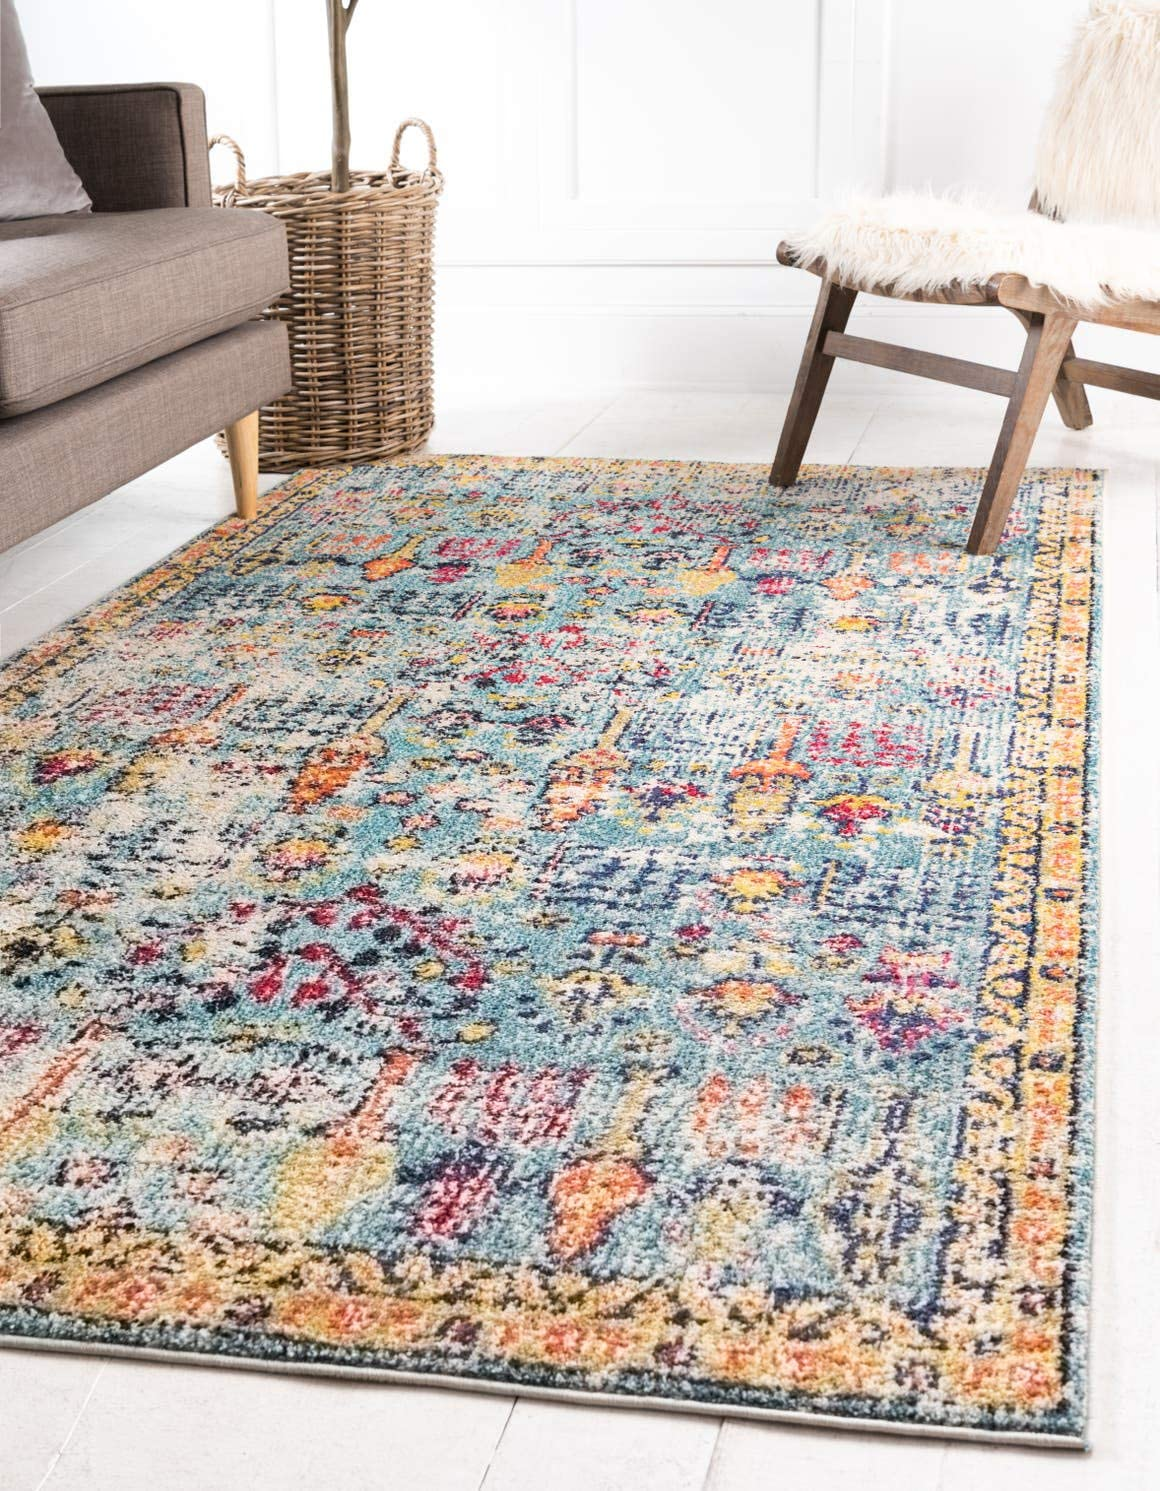 Unique Loom Monterey Collection Vintage Bohemian Tribal Distressed Blue Area Rug 8 0 x 10 0